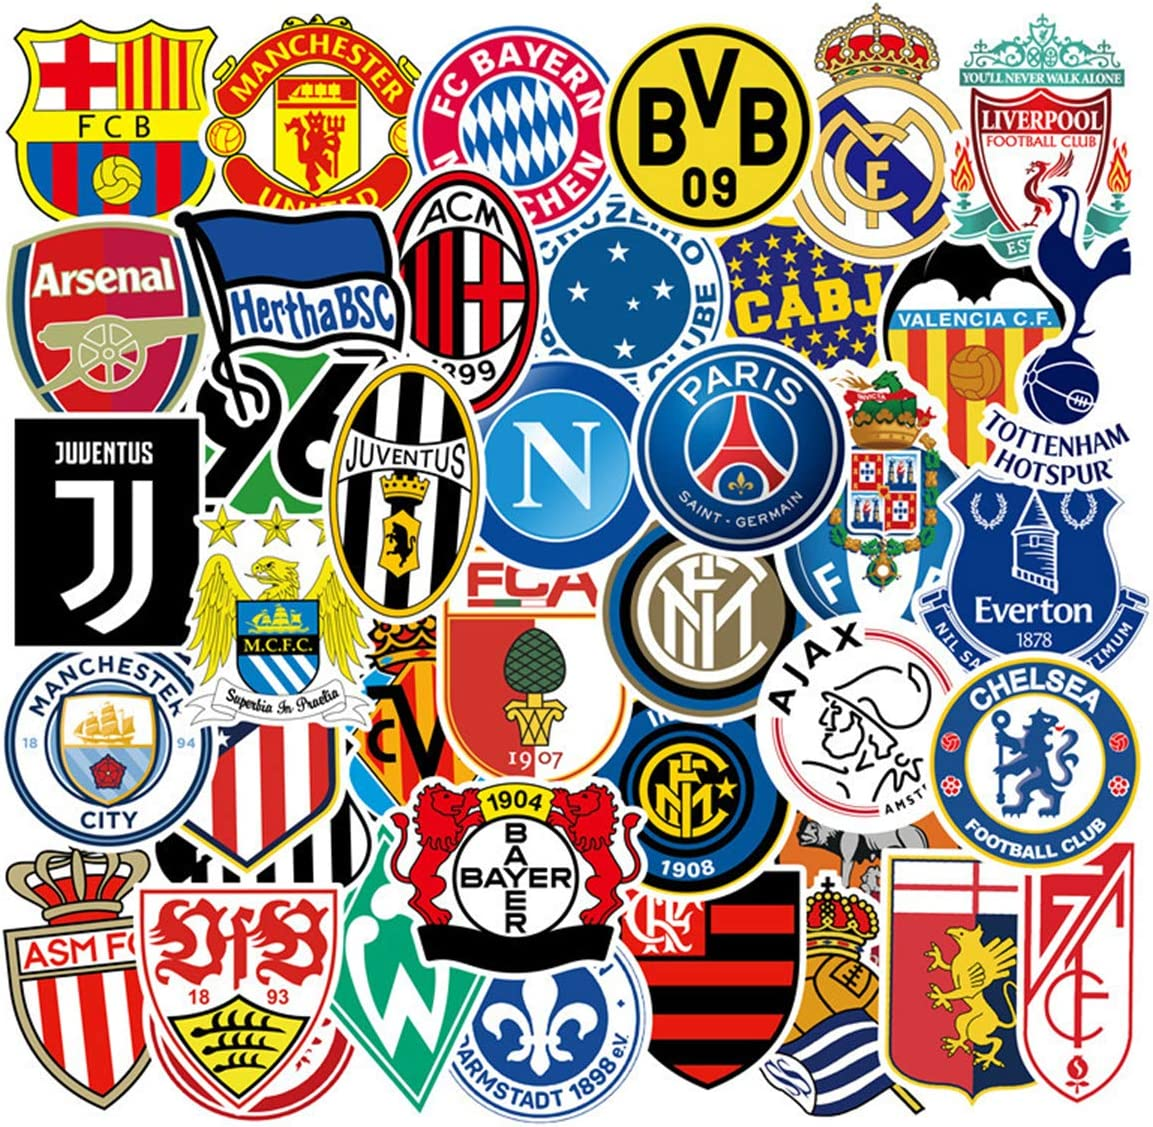 Football Club Logo Laptop Stickers,50psc Soccer Club Stickers Waterproof Vinyl Decal Sticker for Phone,Compute,Cars,Bicycles,PS4, Xbox ONE. (Football Team)